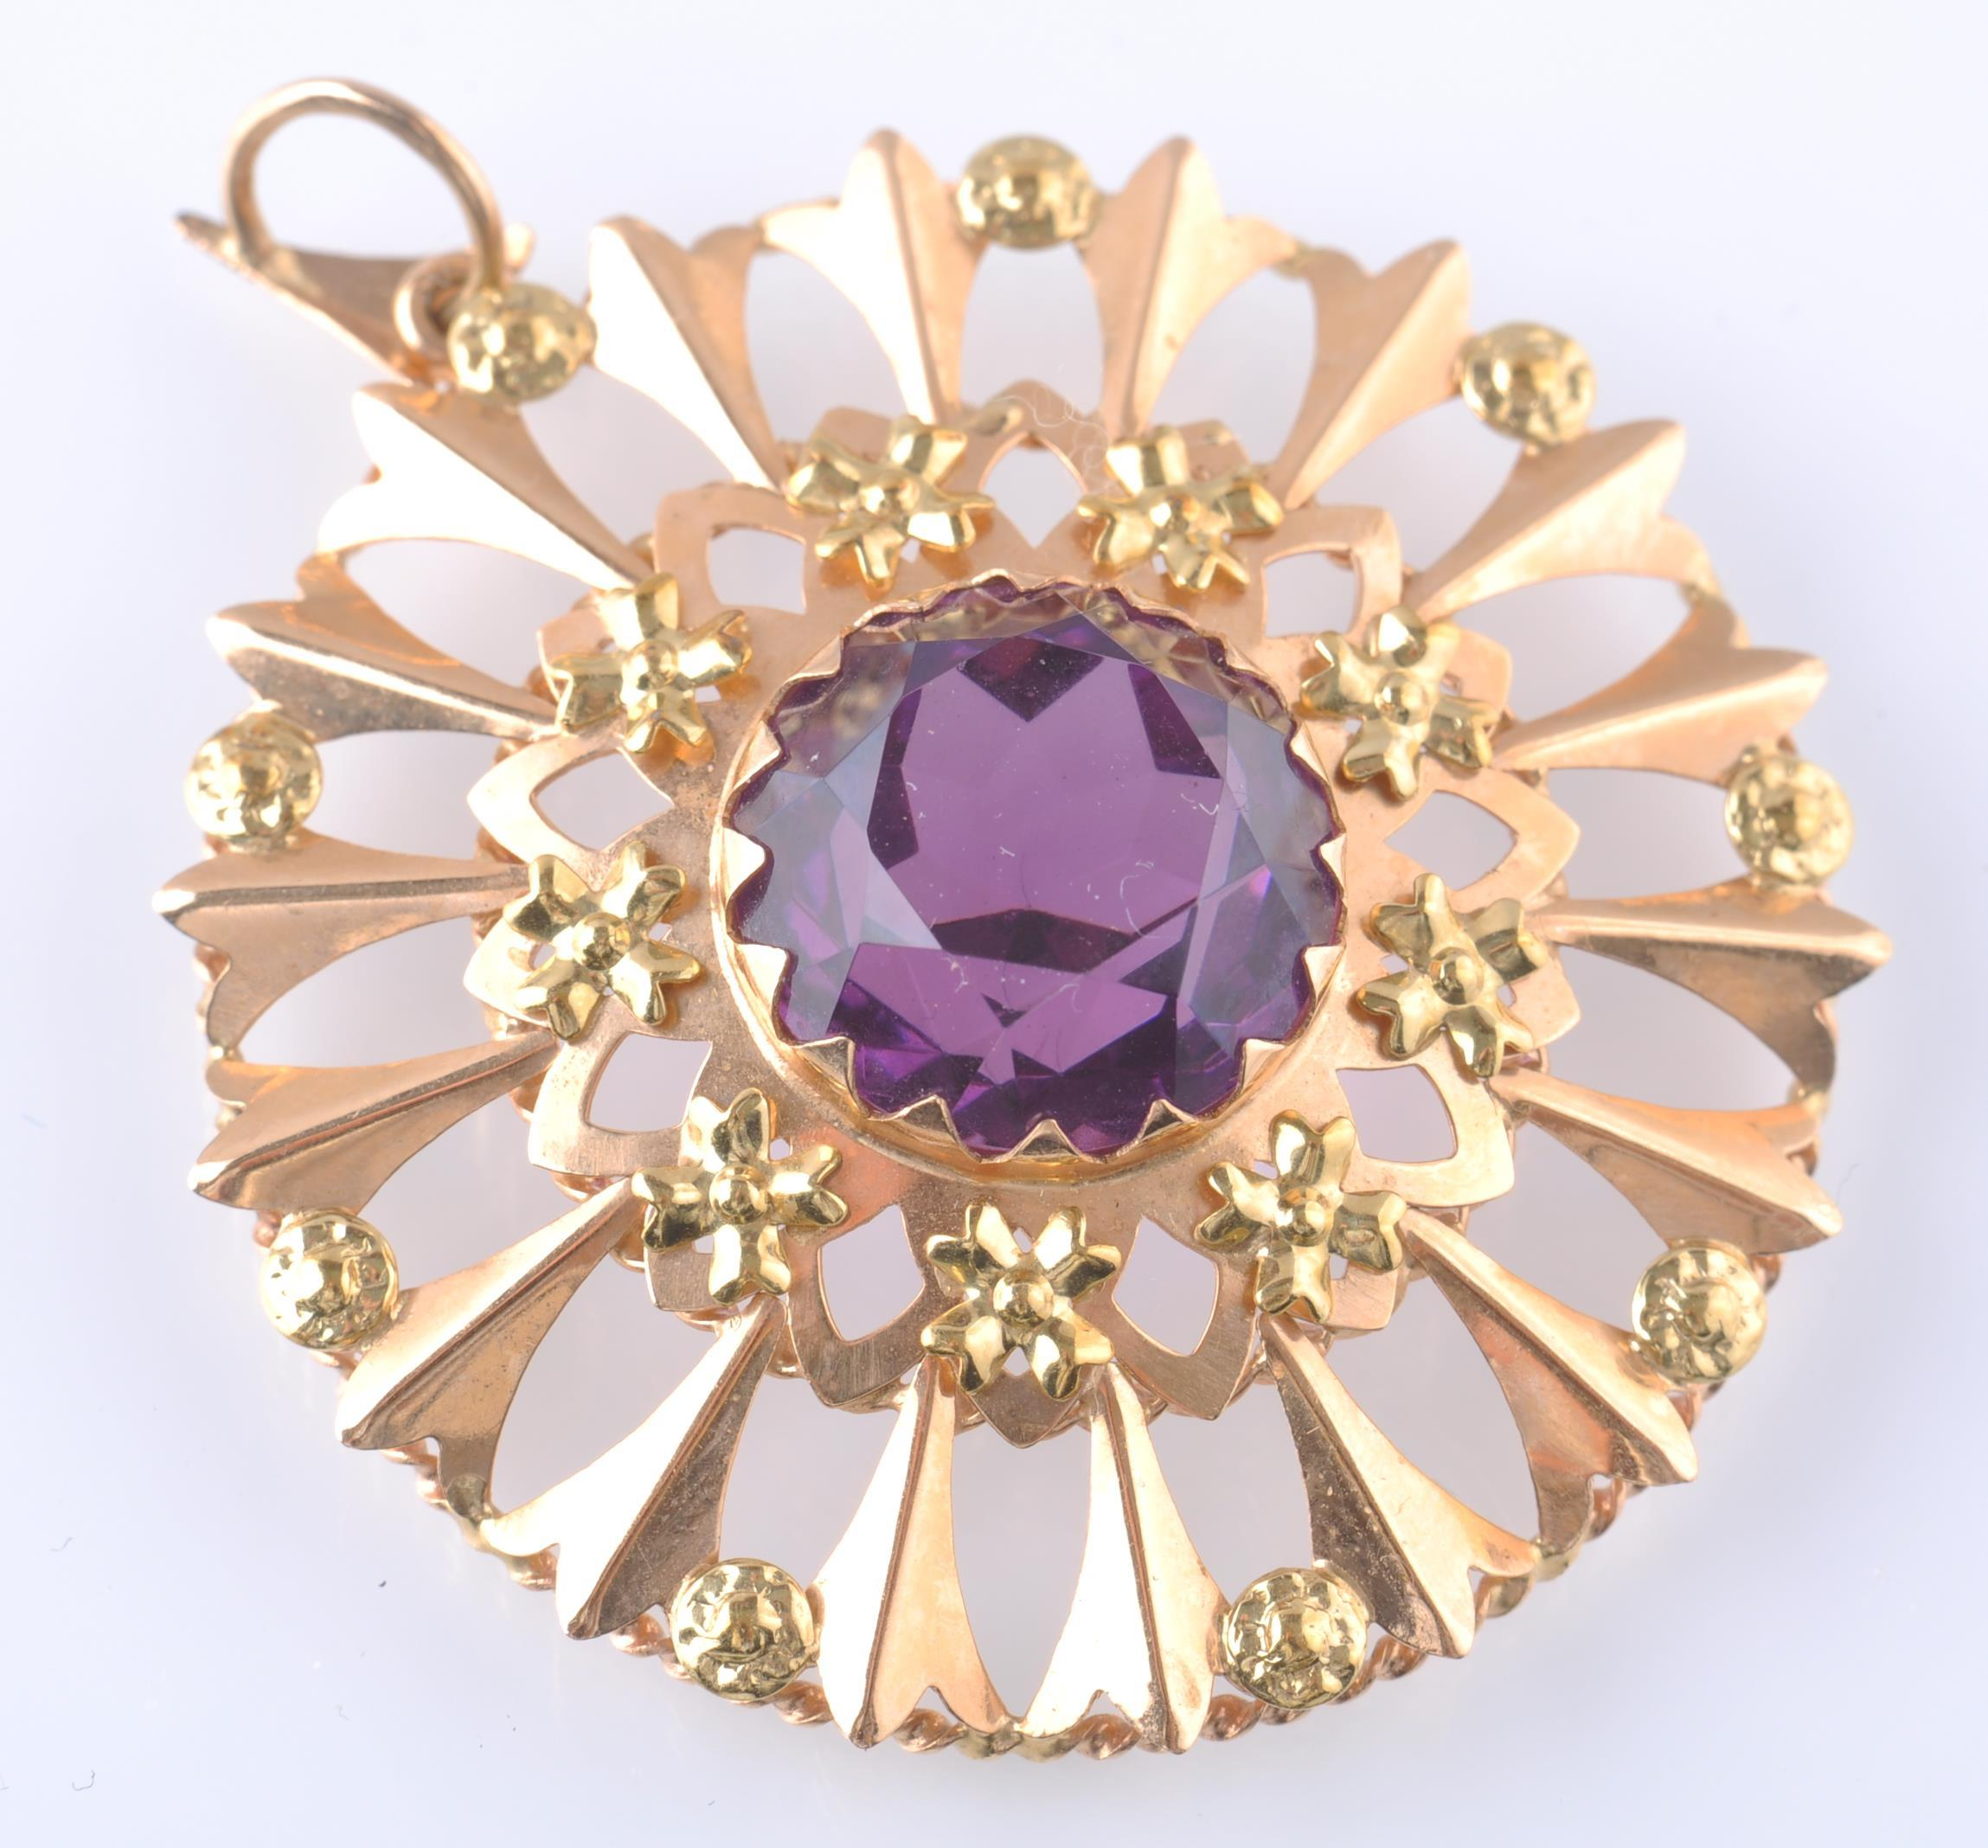 AN 18CT GOLD AND PURPLE GEM PENDANT BROOCH